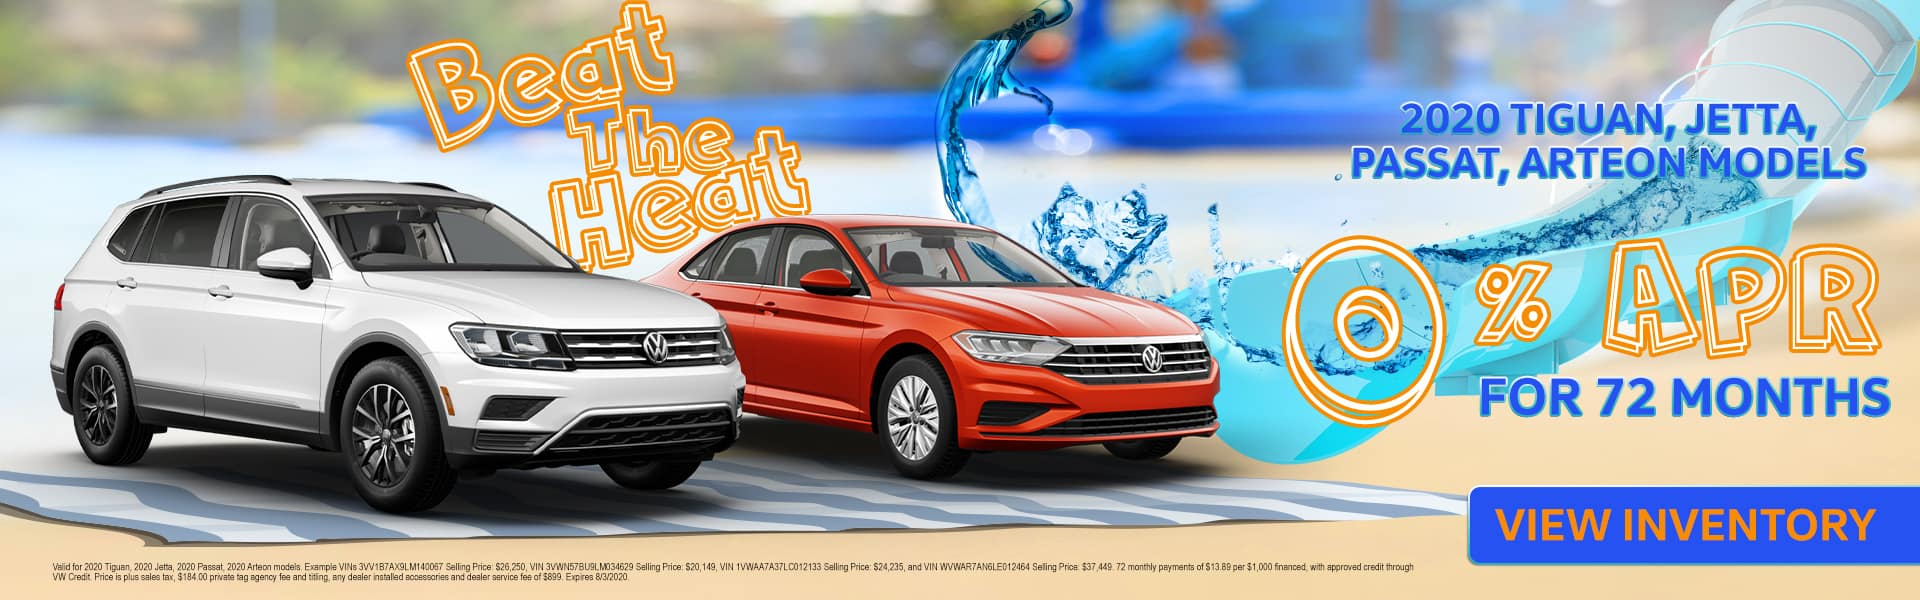 Beat The Heat | 2020 Tiguan, Jetta, Passat, Arteon Models | 0% APR For 72 Months